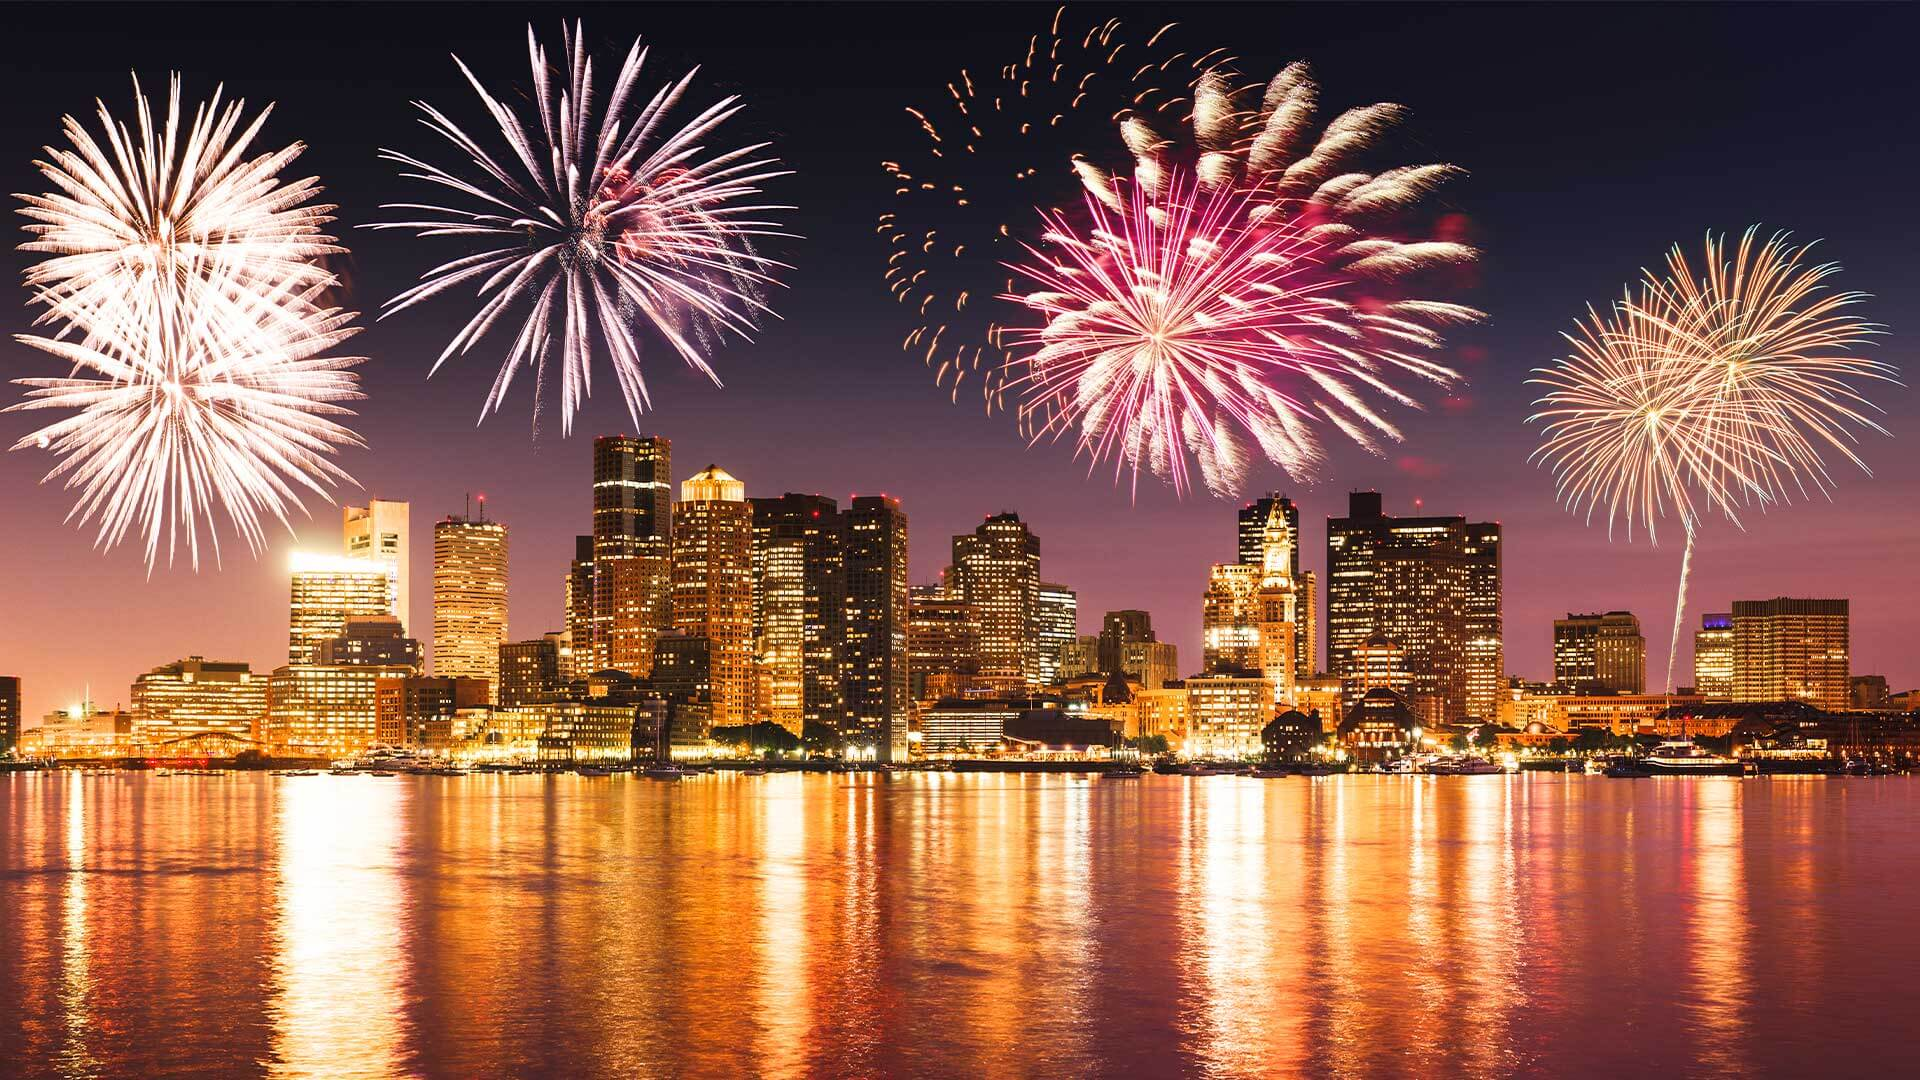 Fourth of July fireworks over the Boston Skyline